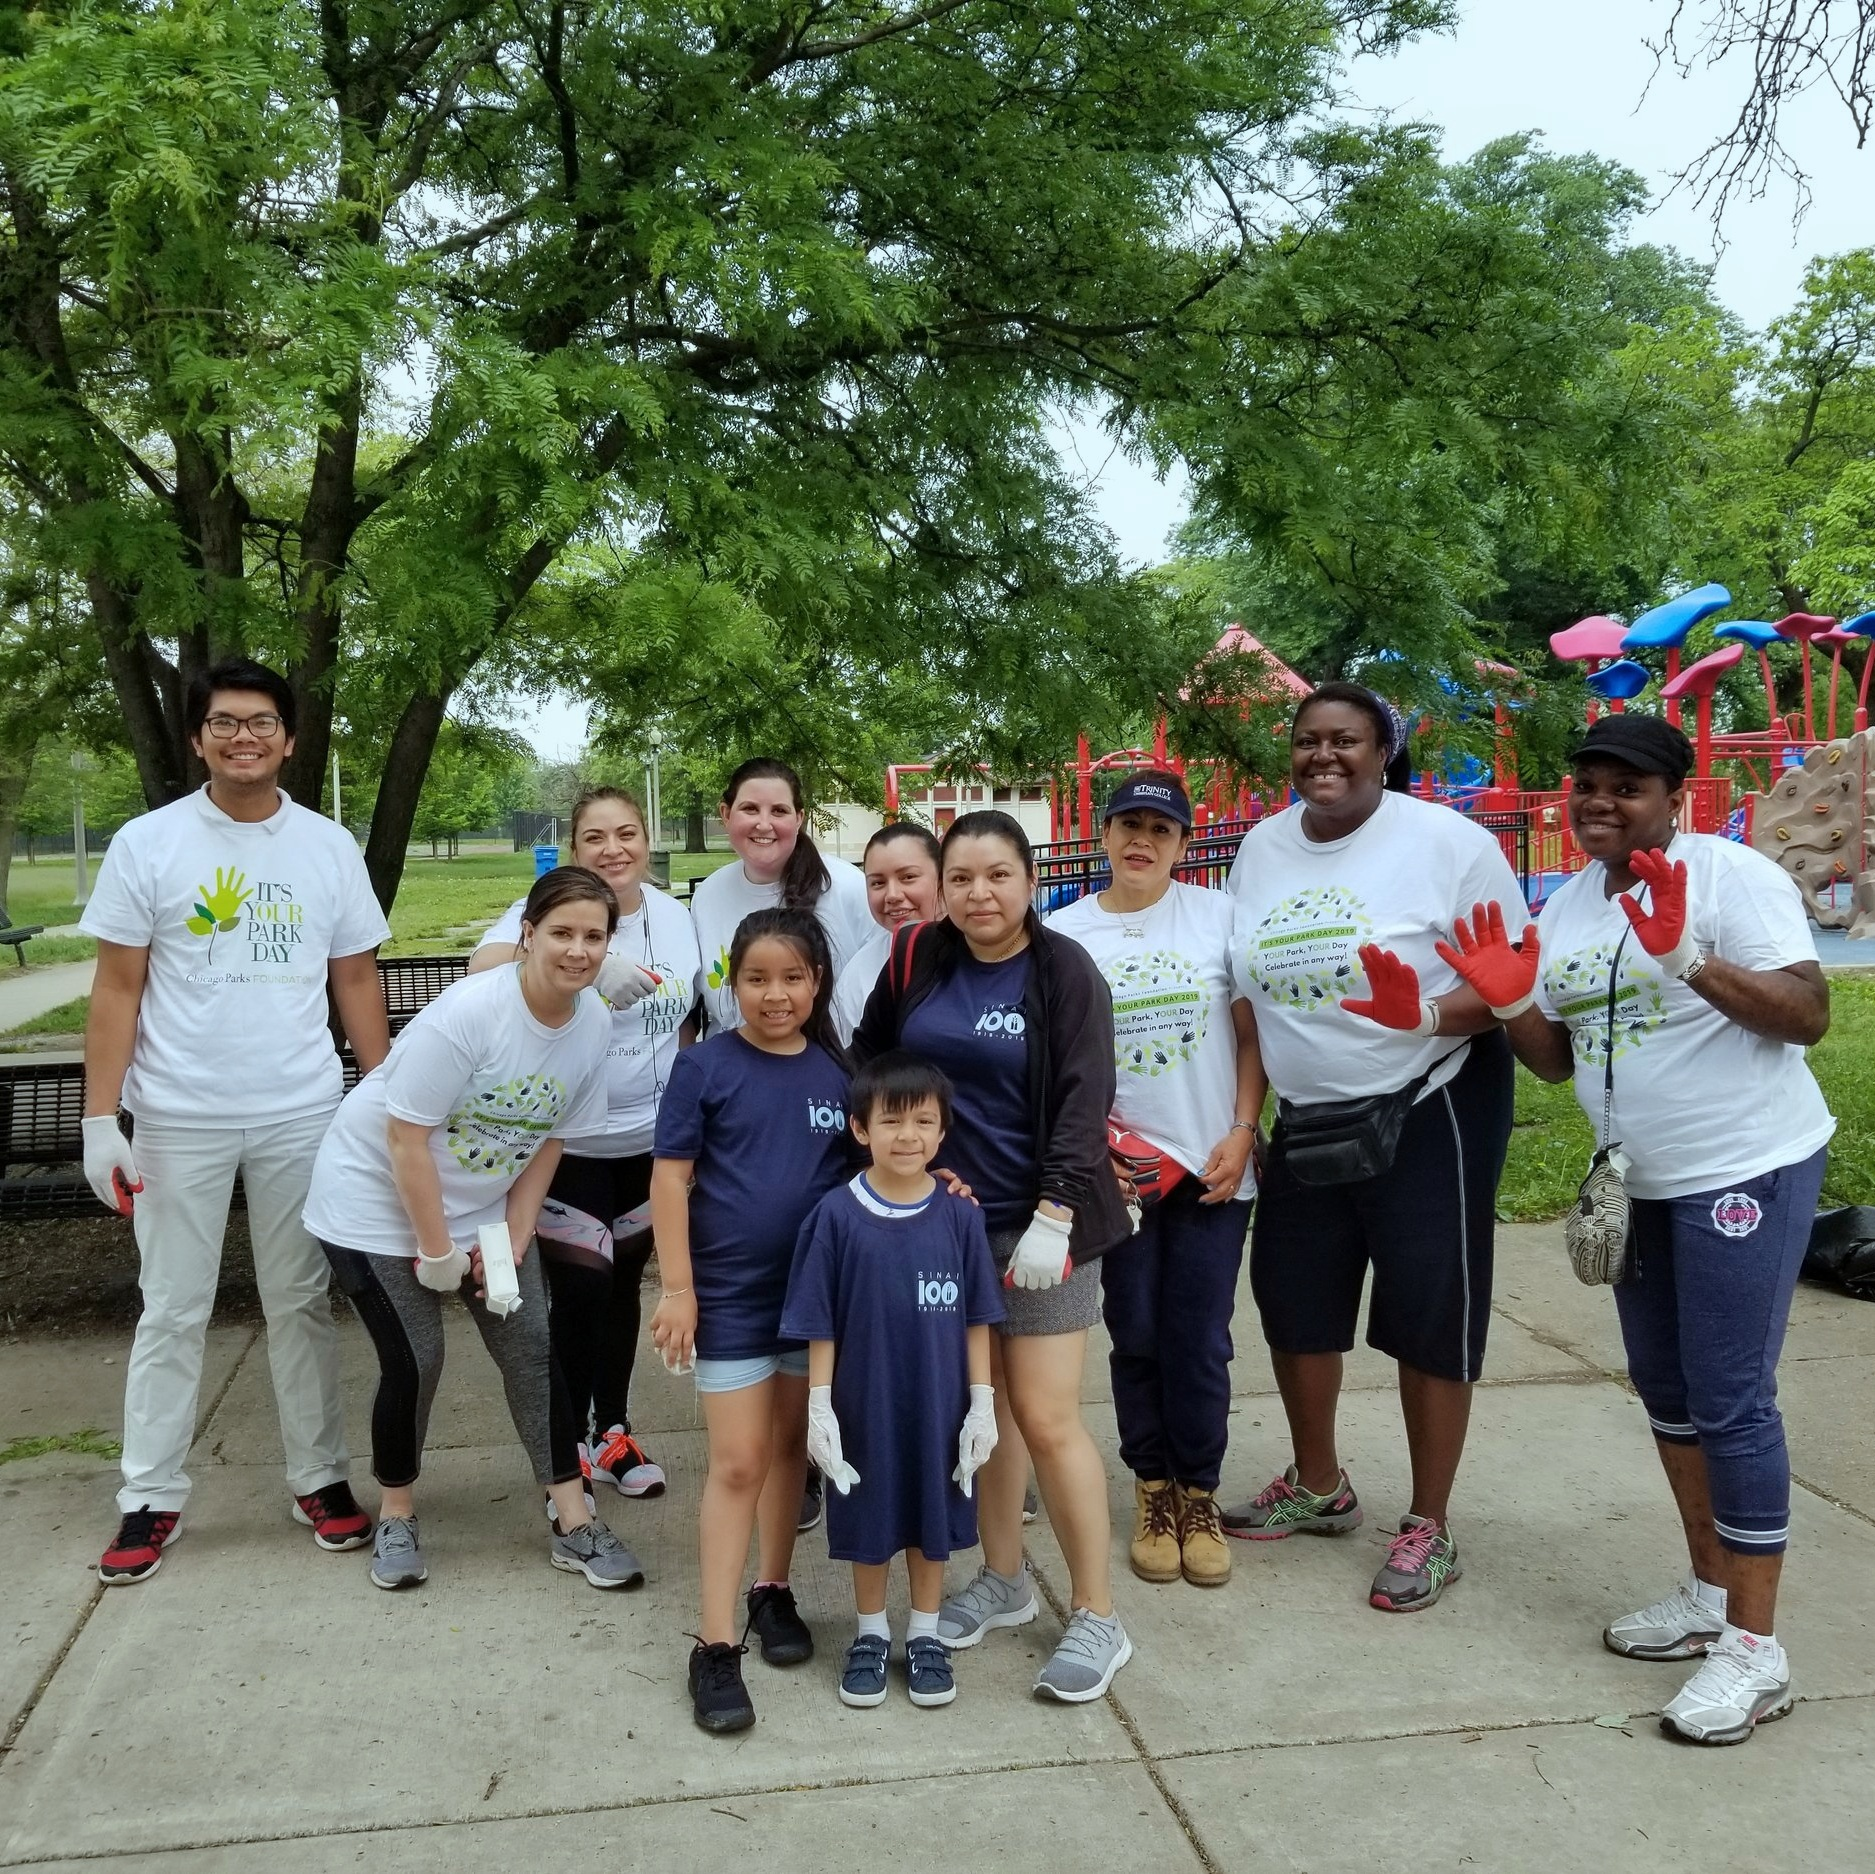 IT'S YOUR PARK DAY   JUNE 2019   • Citywide